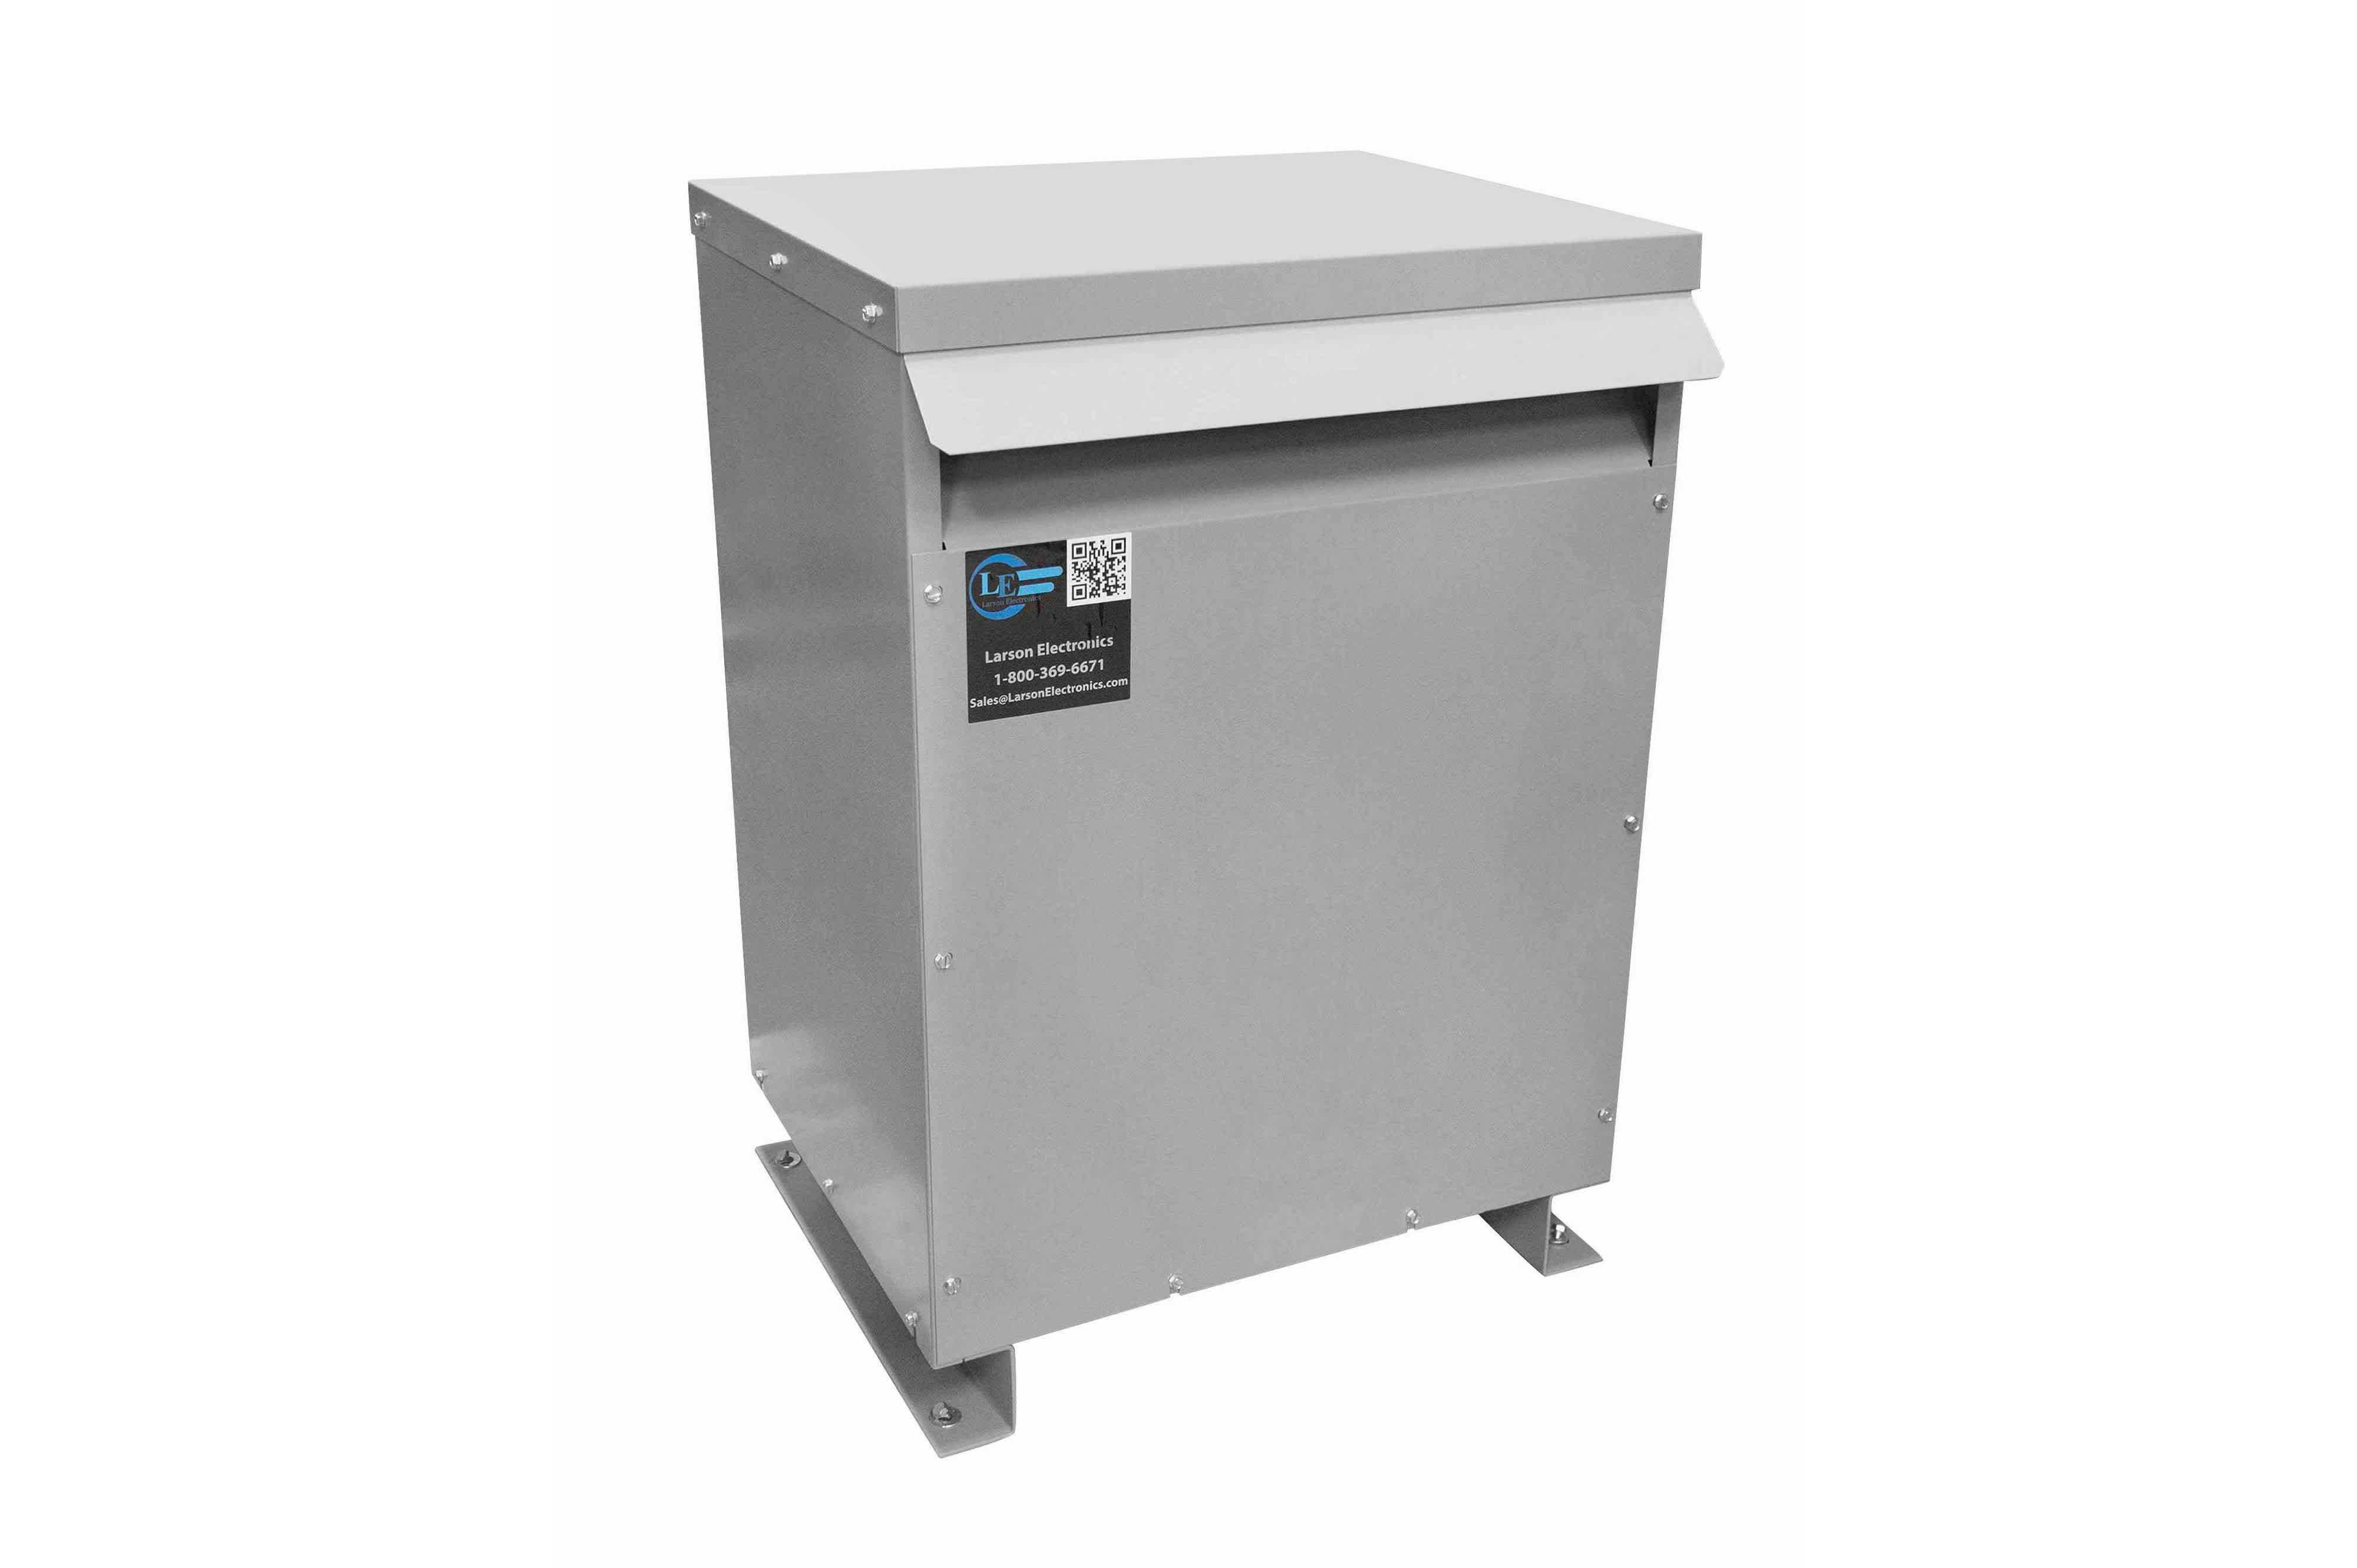 700 kVA 3PH Isolation Transformer, 575V Delta Primary, 240 Delta Secondary, N3R, Ventilated, 60 Hz